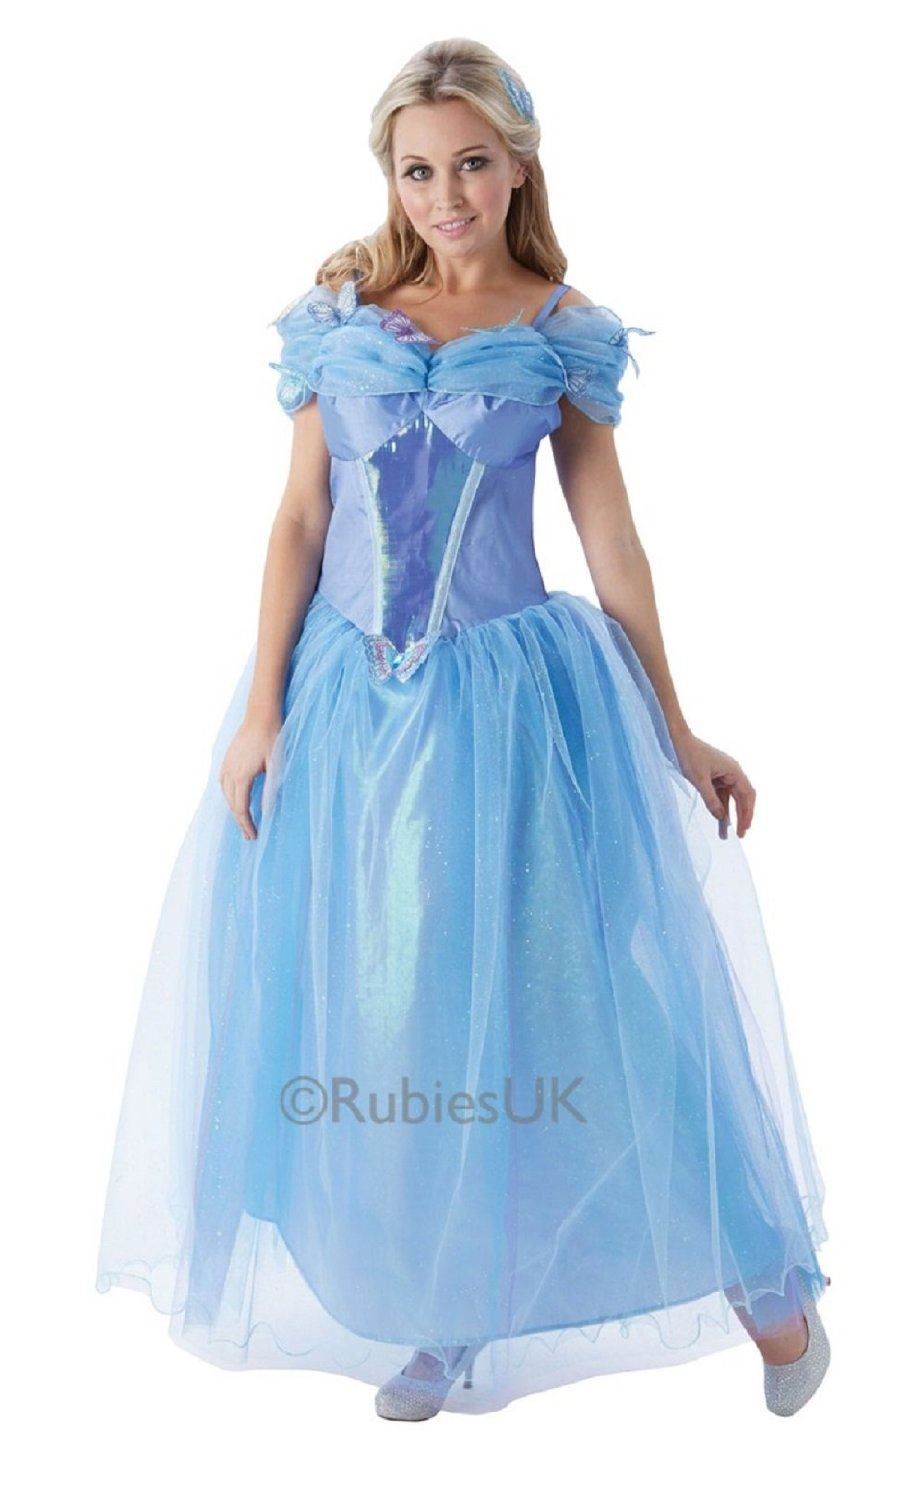 femmes-officiel-Disney-Cendrillon-Costume-Conte-fees-costume-halloween